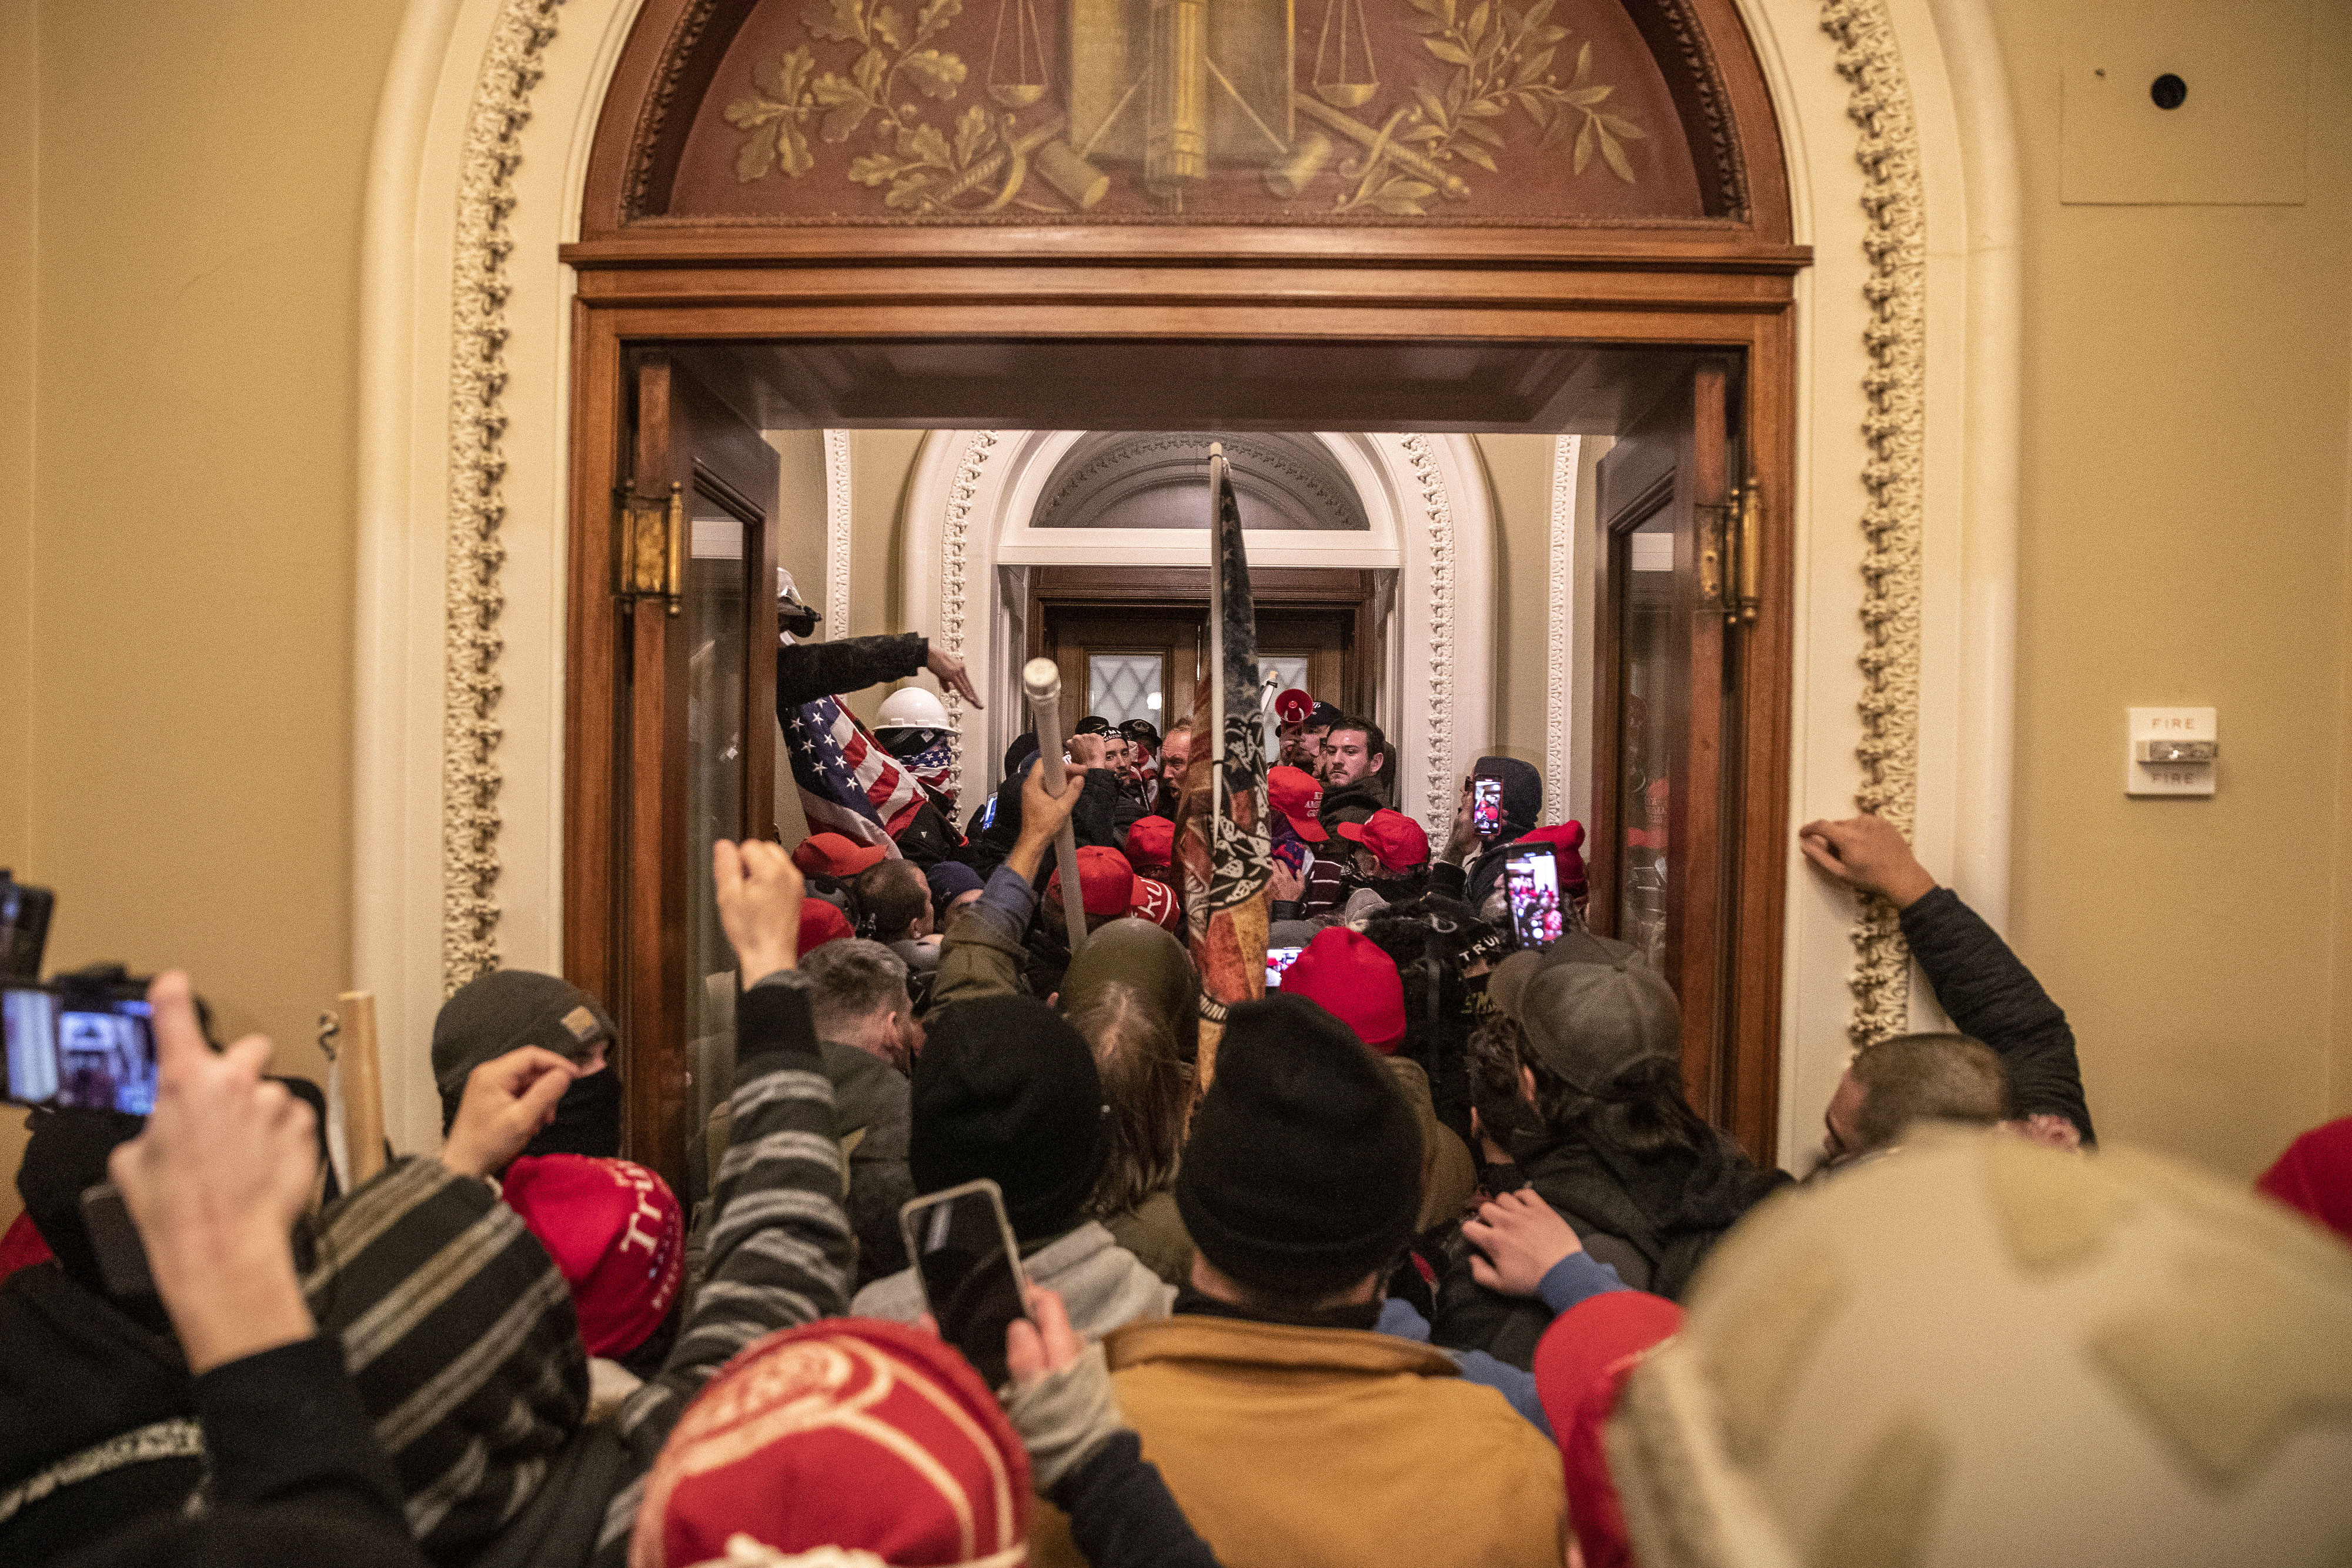 Rioters walk through the Capitol after breaching barricades to the building on January 6.